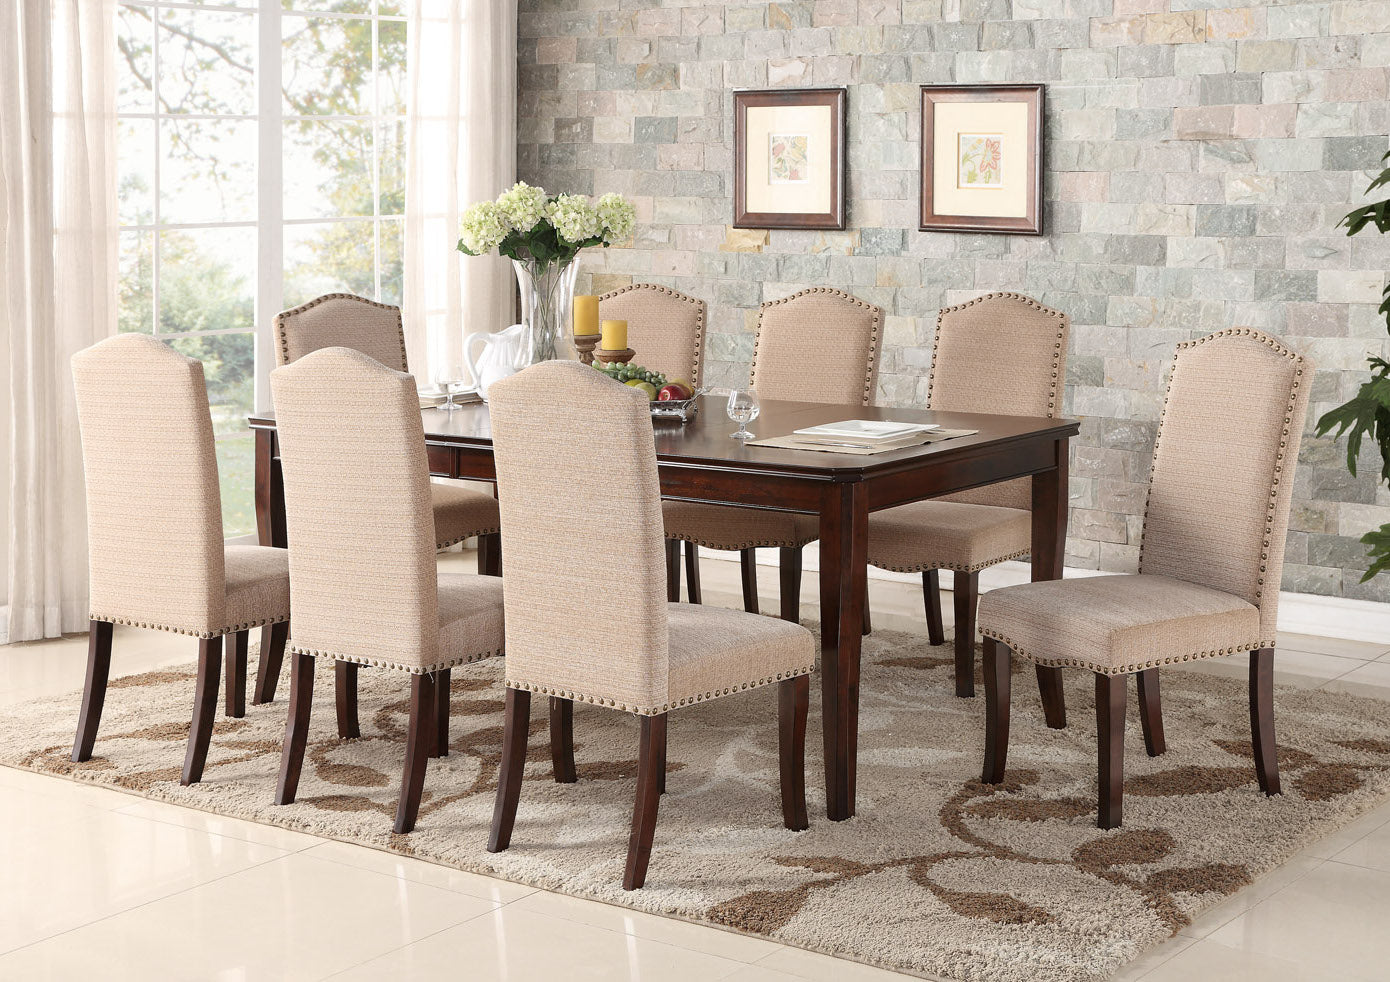 Fantastic Rowena Formal Dining Room Chairs Cream White Upholstery Gmtry Best Dining Table And Chair Ideas Images Gmtryco